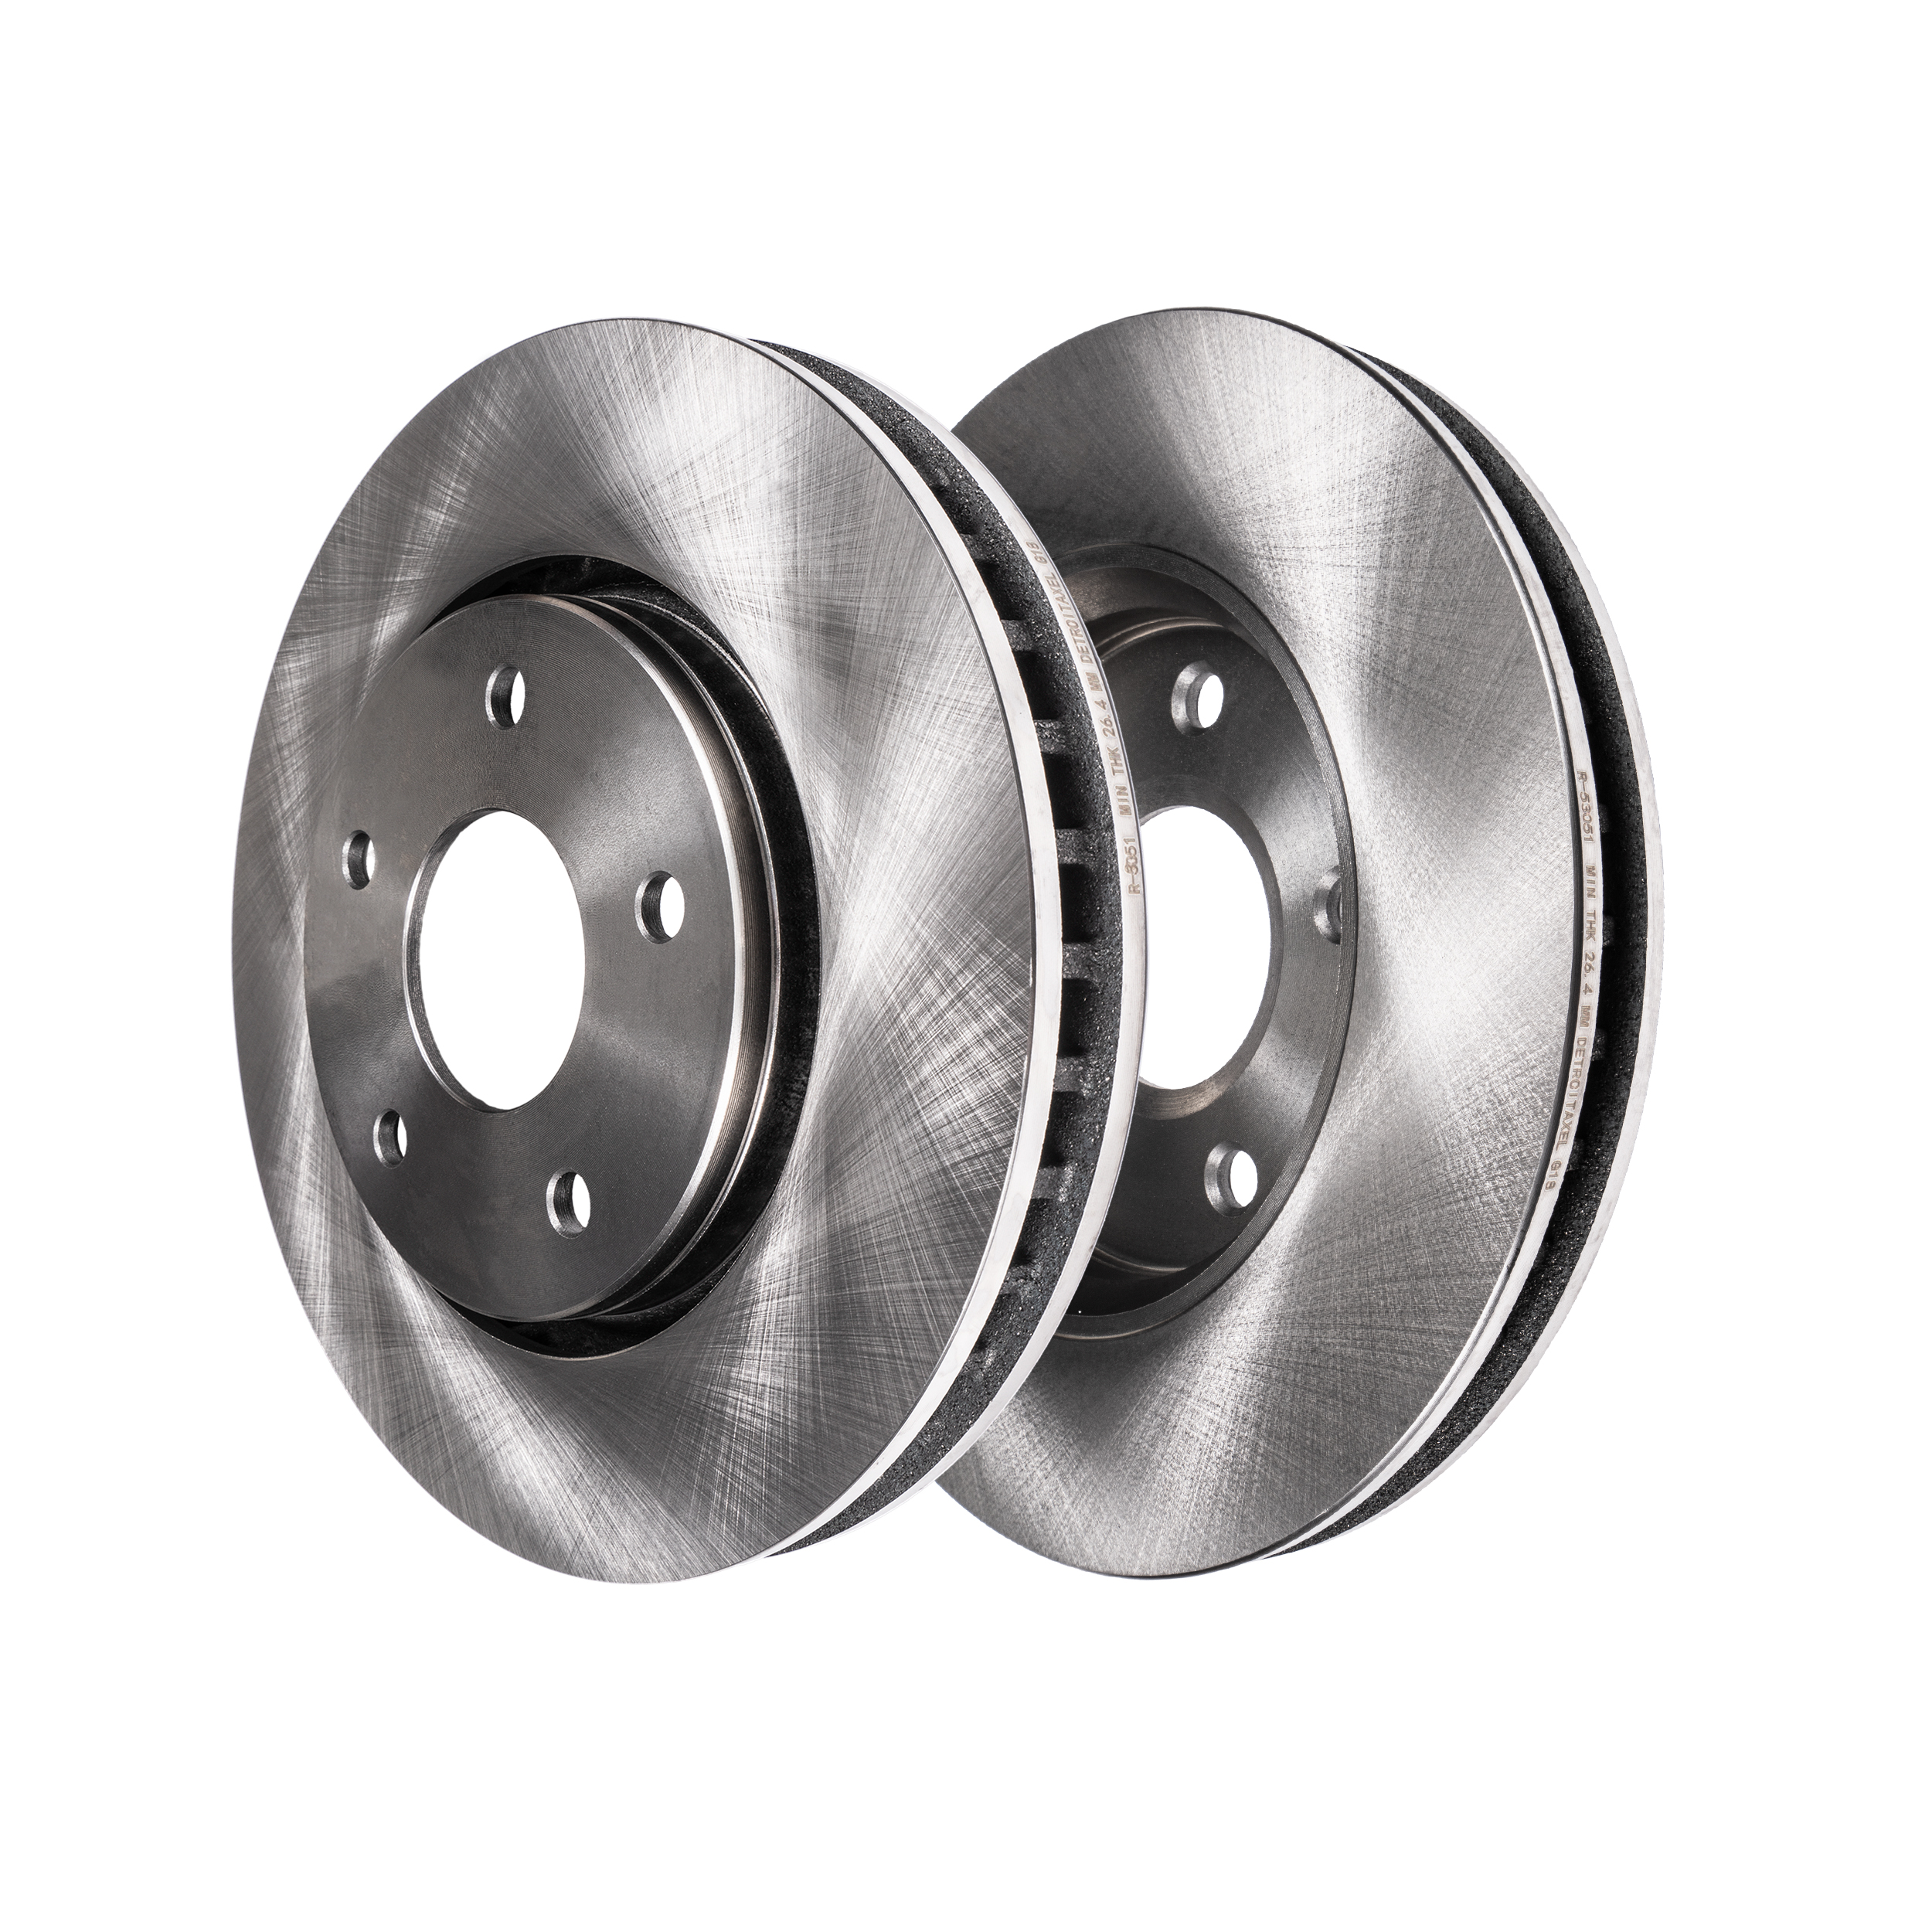 Premium FRONT Brake Rotors for 2011-2017 Dodge Durango w//o Heavy Duty Brakes Jeep Grand Cherokee w//17 wheels Detroit Axle 12.99 330mm